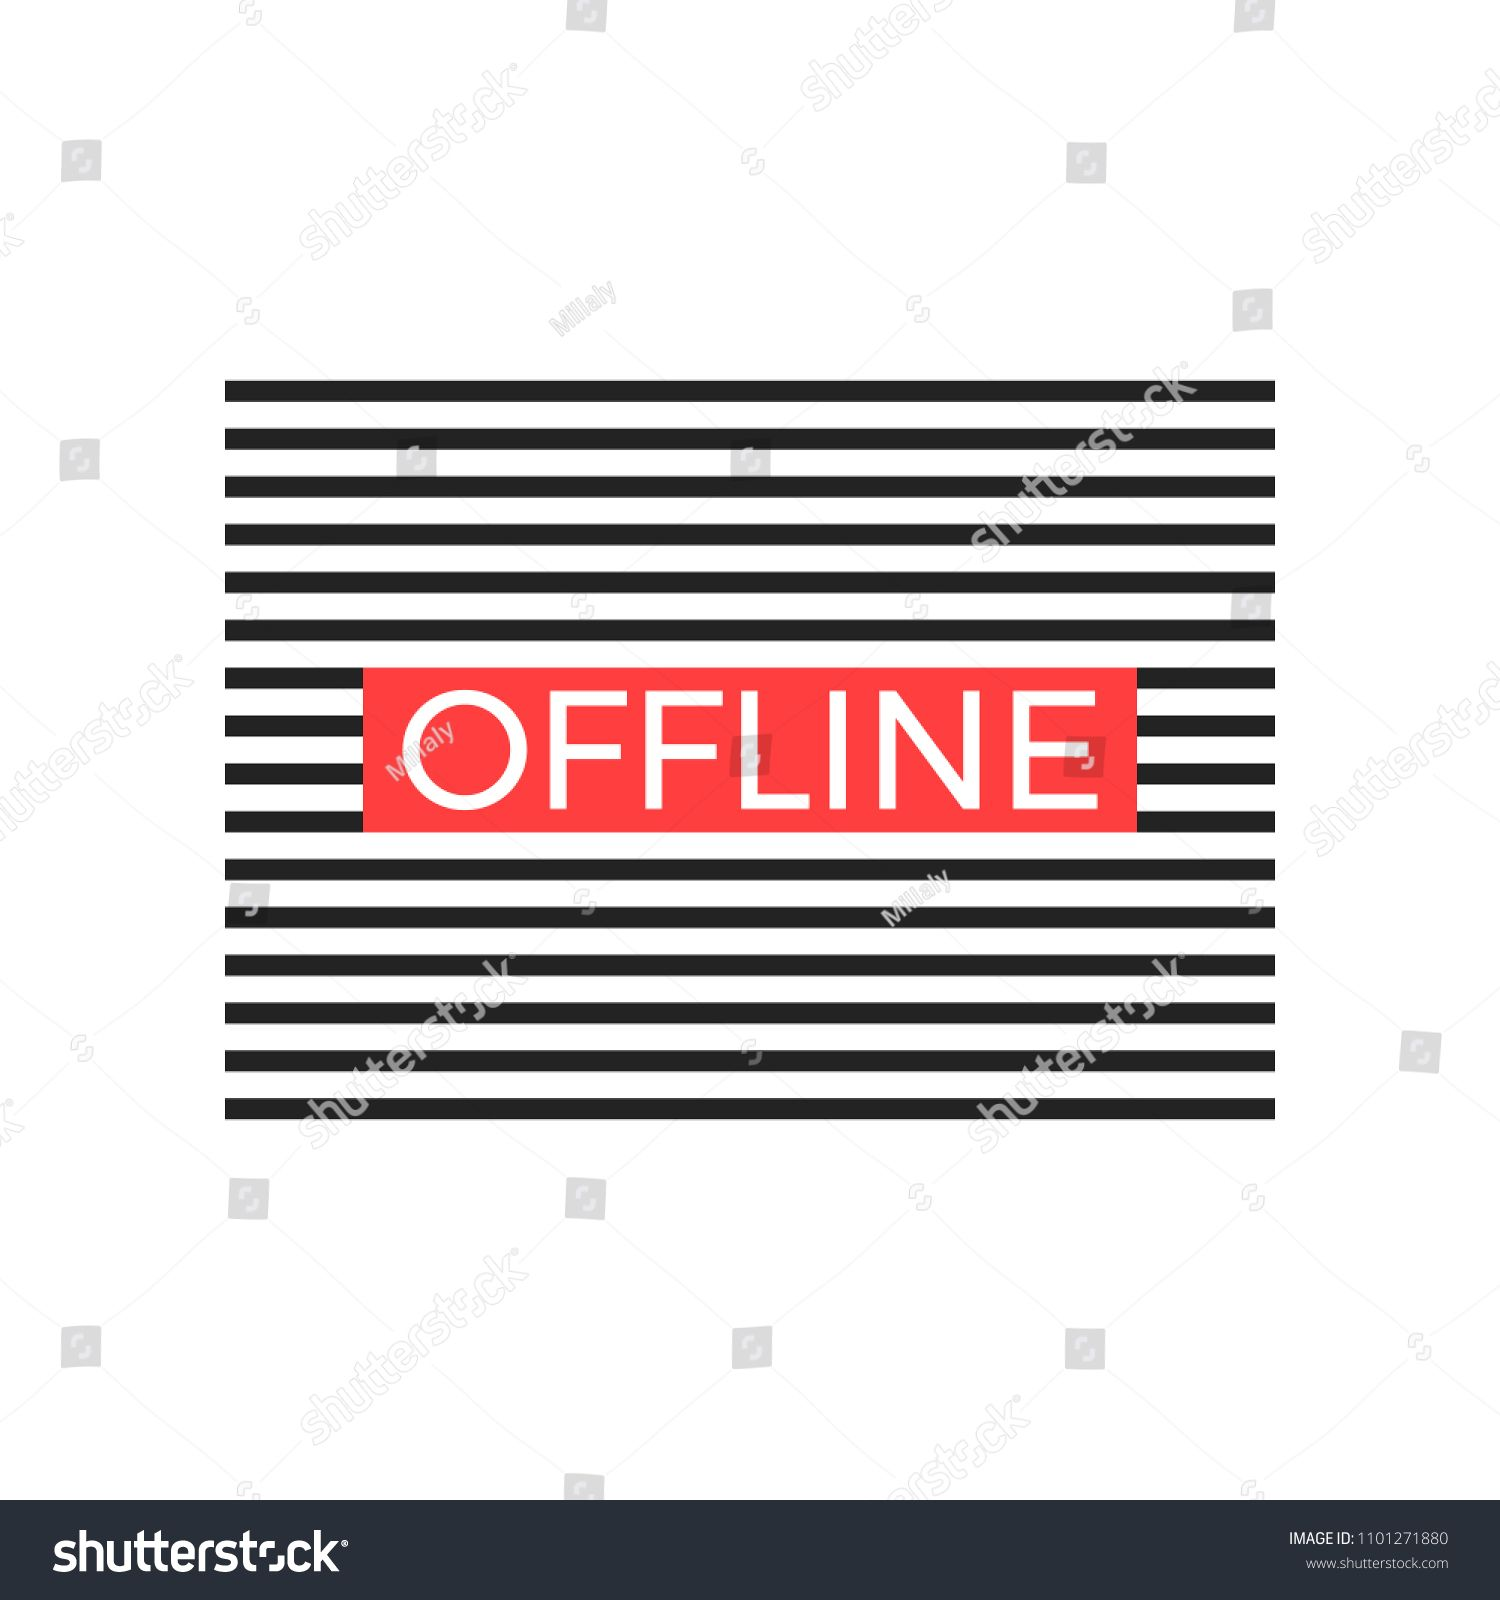 Offline slogan graphic with black horizontal lines. Modern